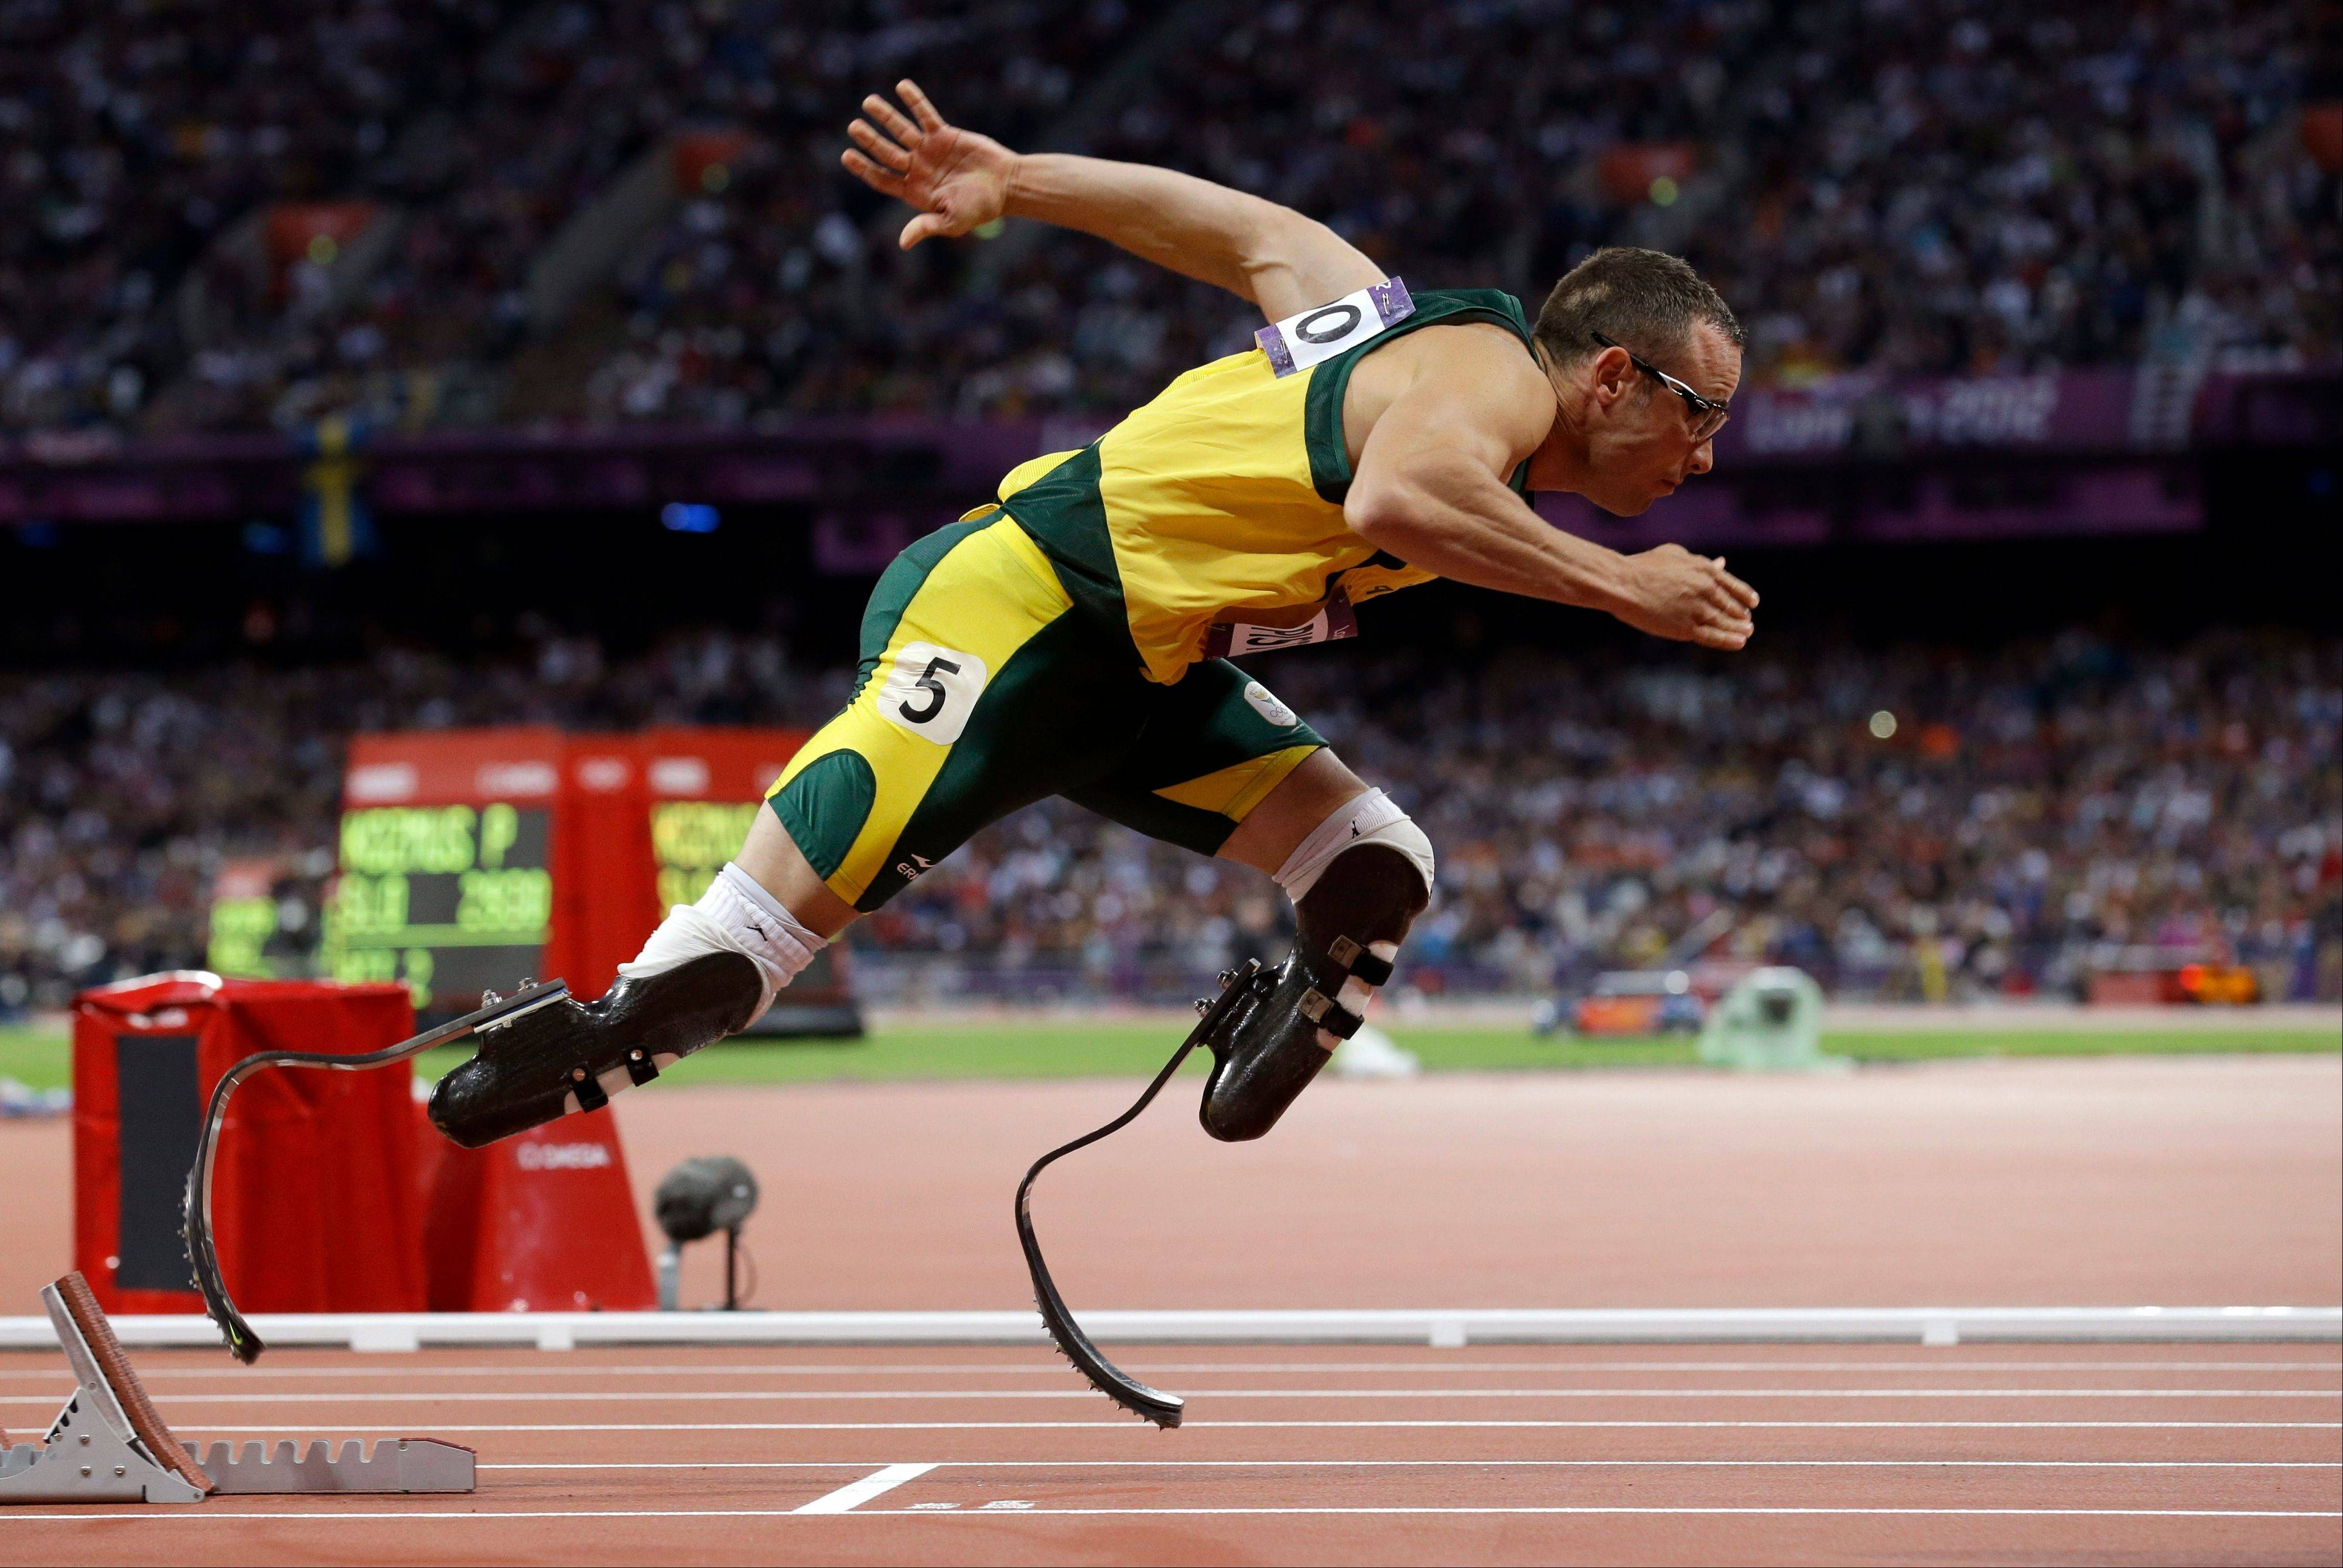 In this Aug. 5, 2012, file photo, South Africa�s Oscar Pistorius starts in the men�s 400-meter semifinal during the athletics in the Olympic Stadium at the 2012 Summer Olympics in London. Paralympic superstar Oscar Pistorius was charged Thursday with the murder of his girlfriend who was shot inside his home in South Africa, a stunning development in the life of a national hero known as the Blade Runner for his high-tech artificial legs.